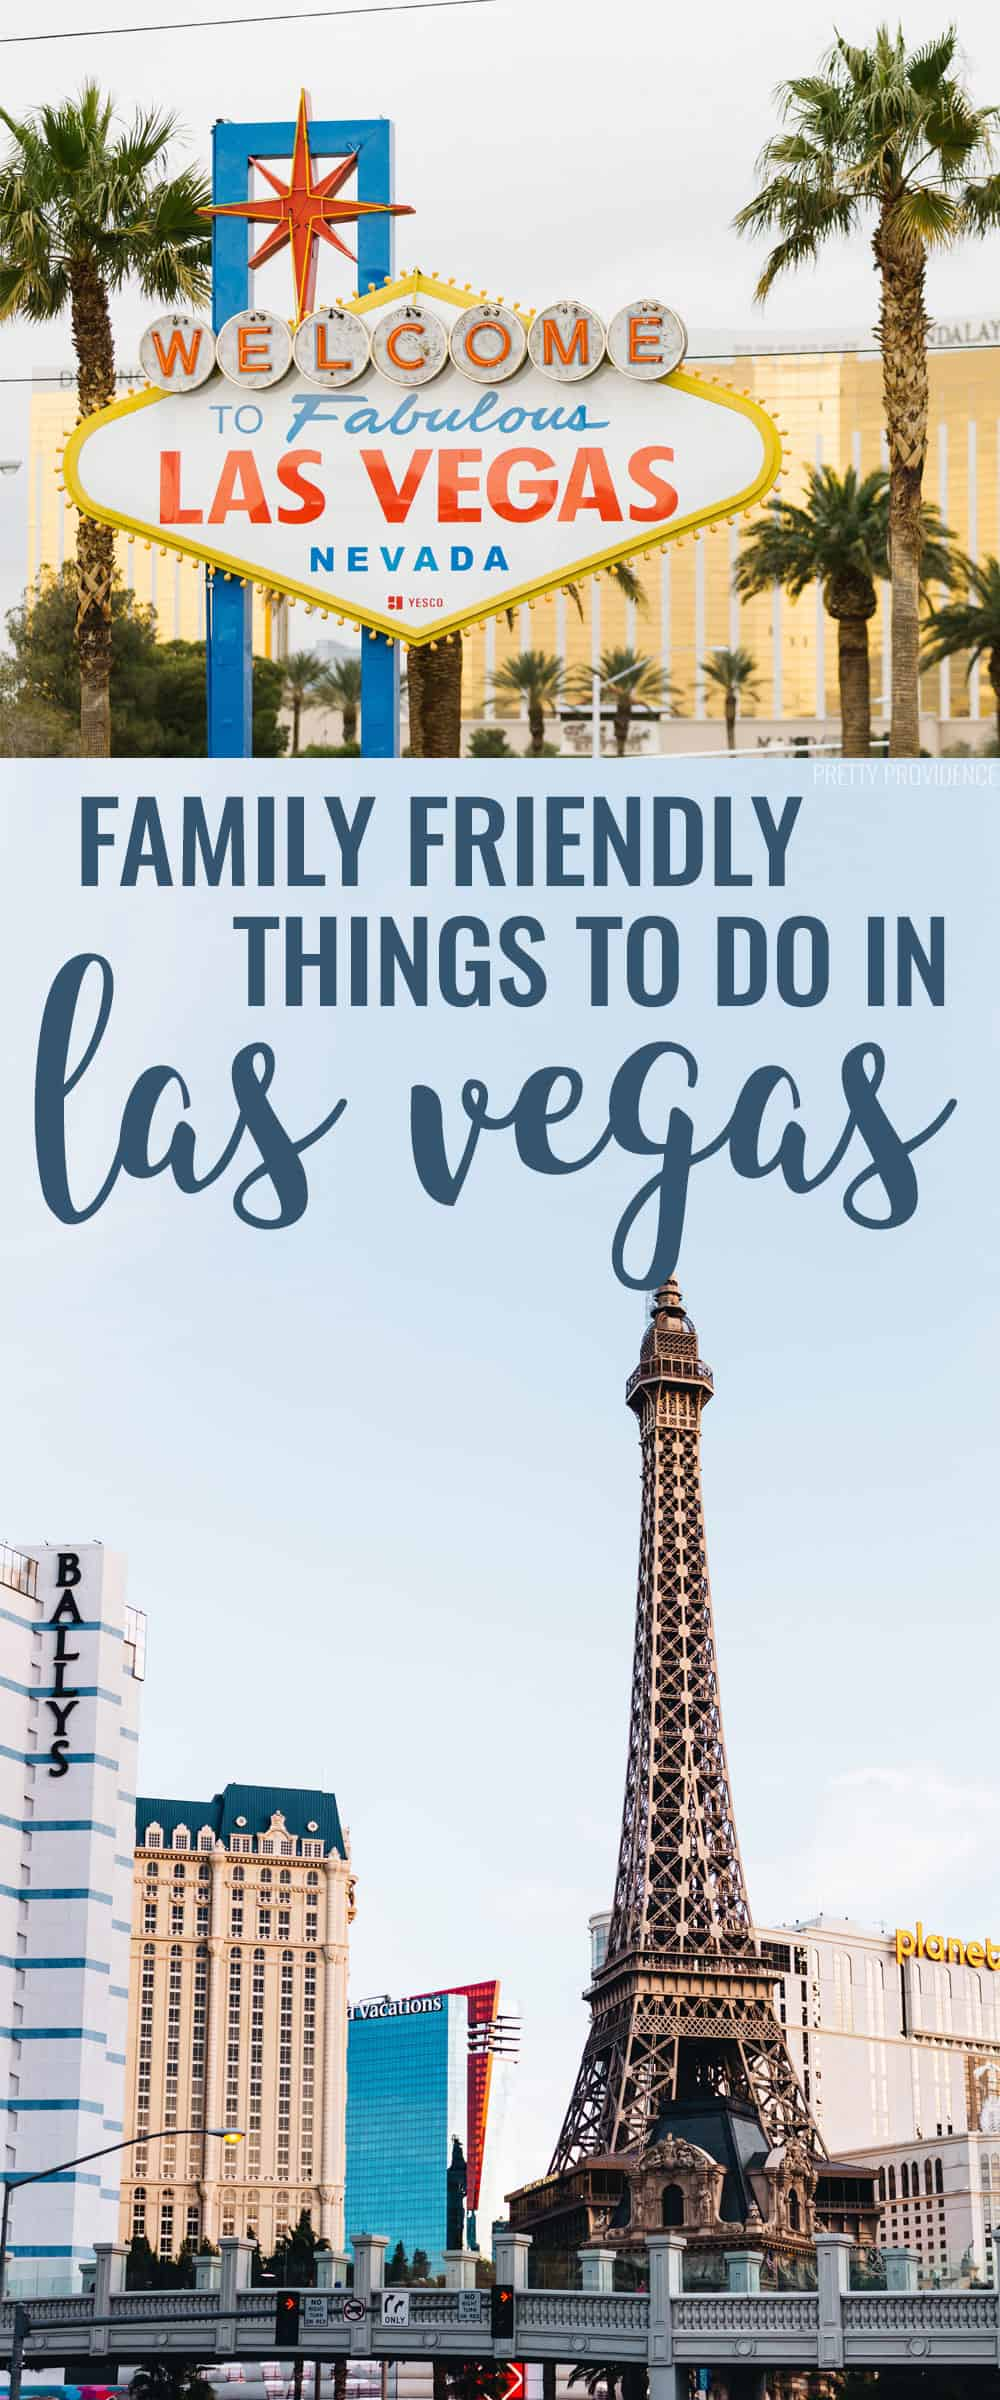 Family friendly hotels and things to do in Las Vegas!